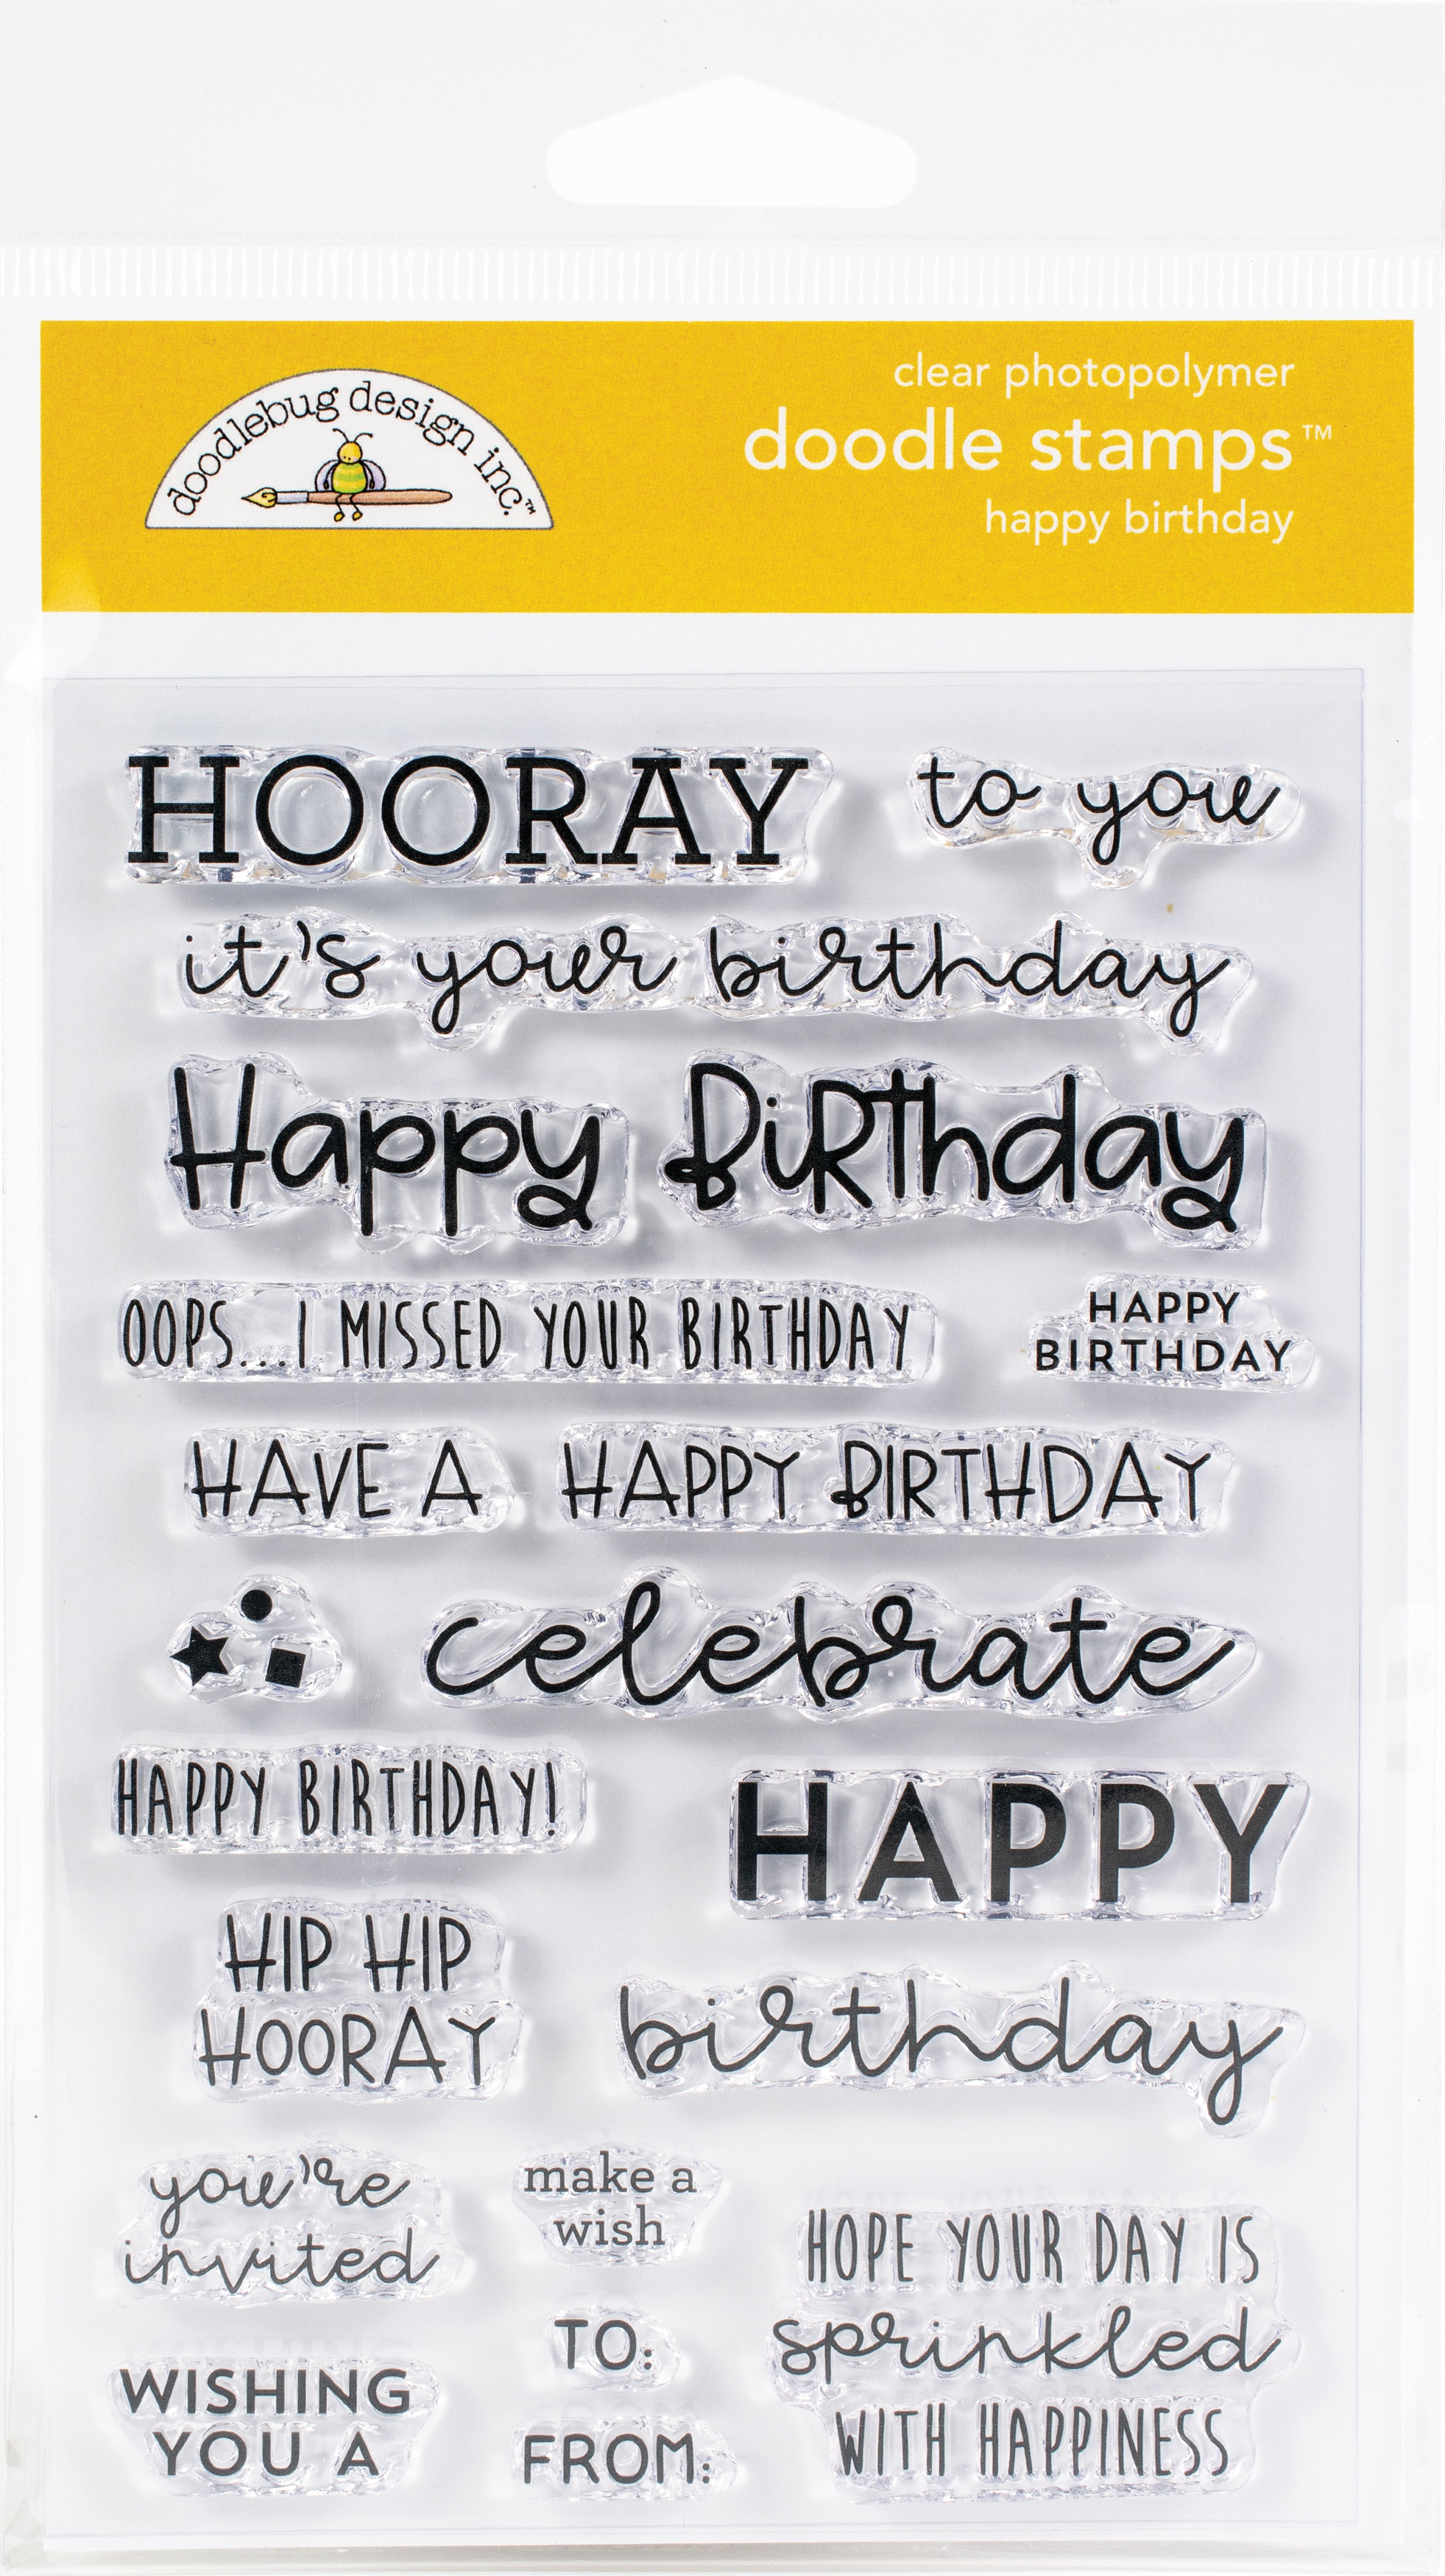 Doodlebug Clear Doodle Stamps-Happy Birthday